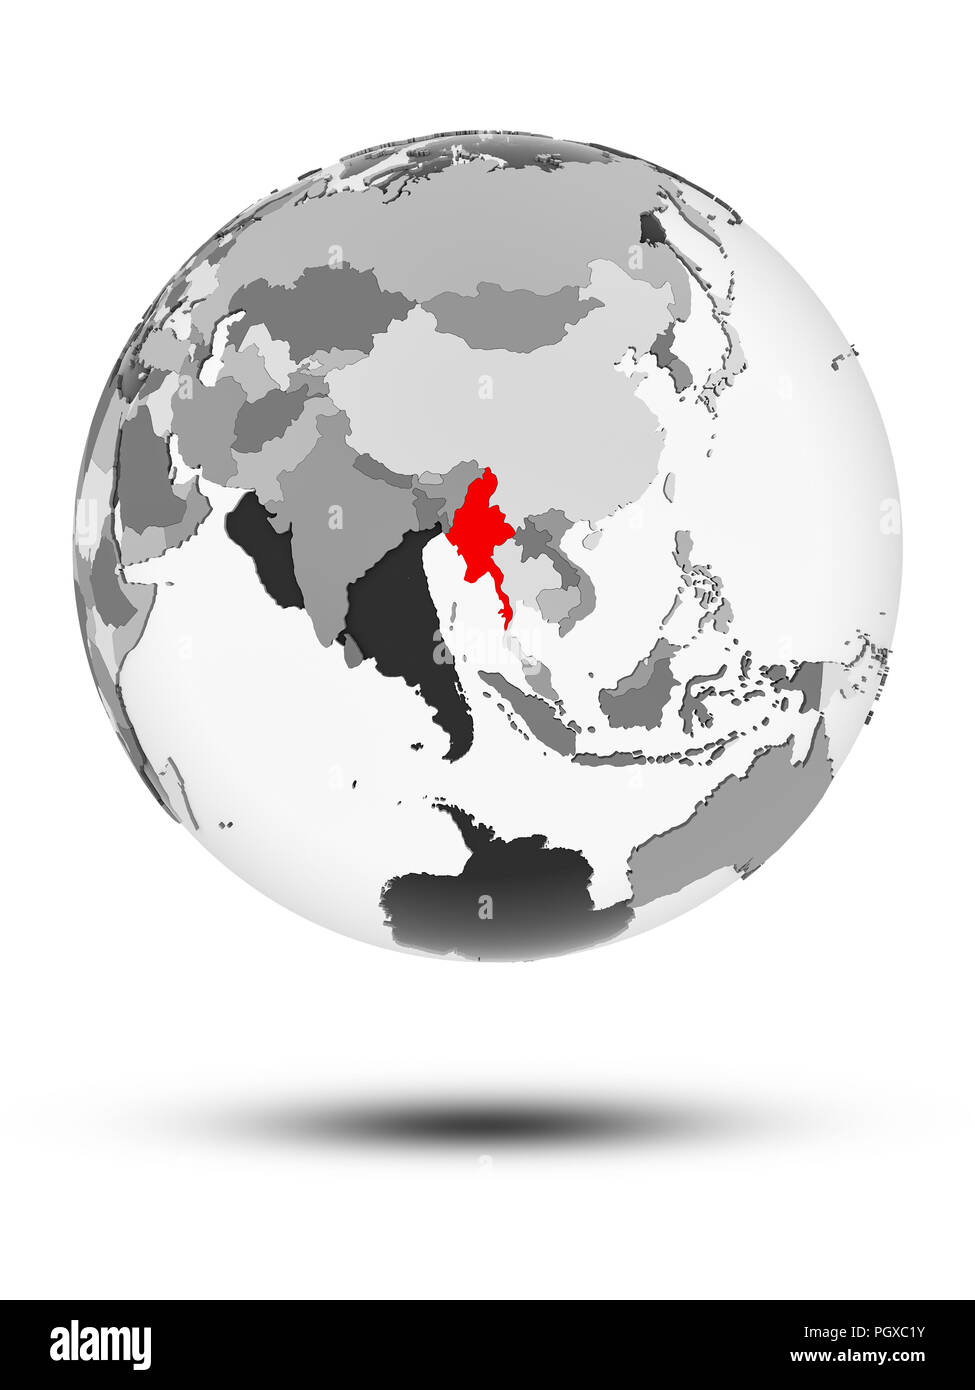 Myanmar on globe with translucent oceans isolated on white background. 3D illustration. - Stock Image